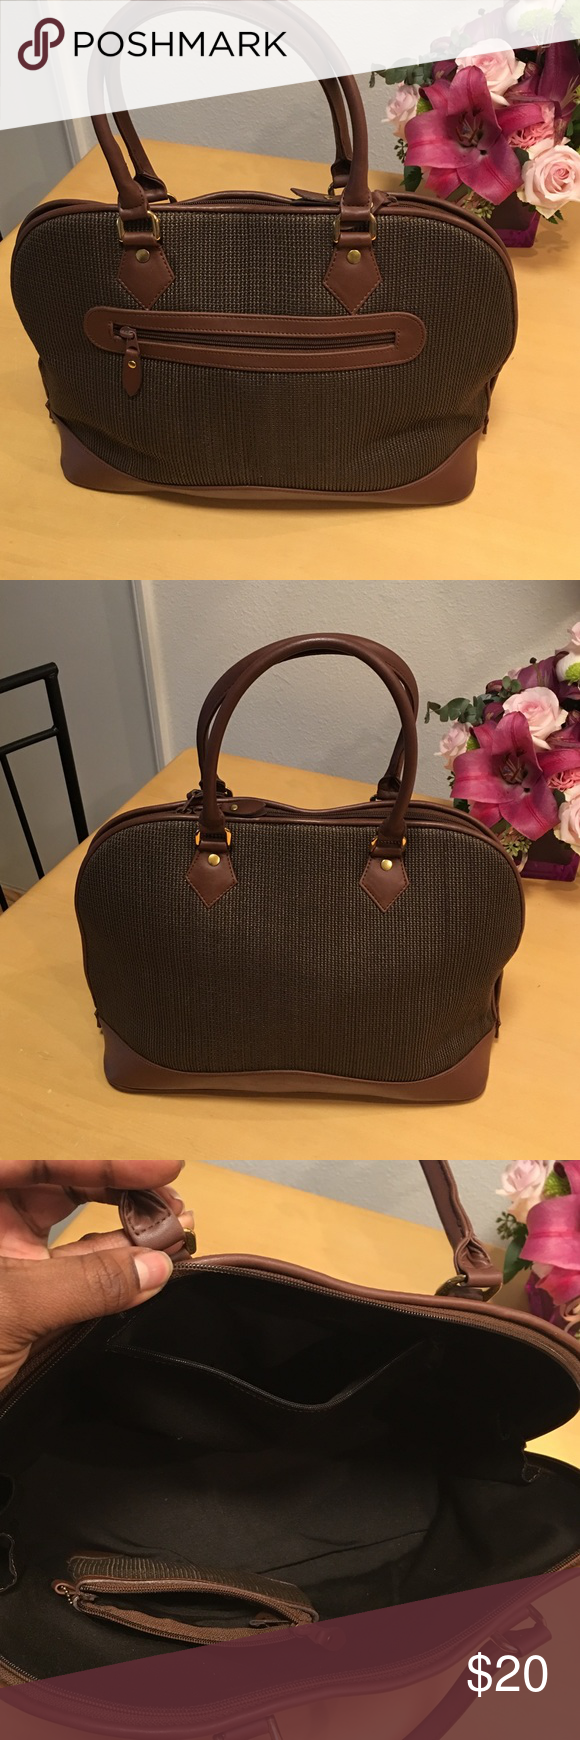 Satchel Brown textured leather bag with a mini coin bag Bags Satchels